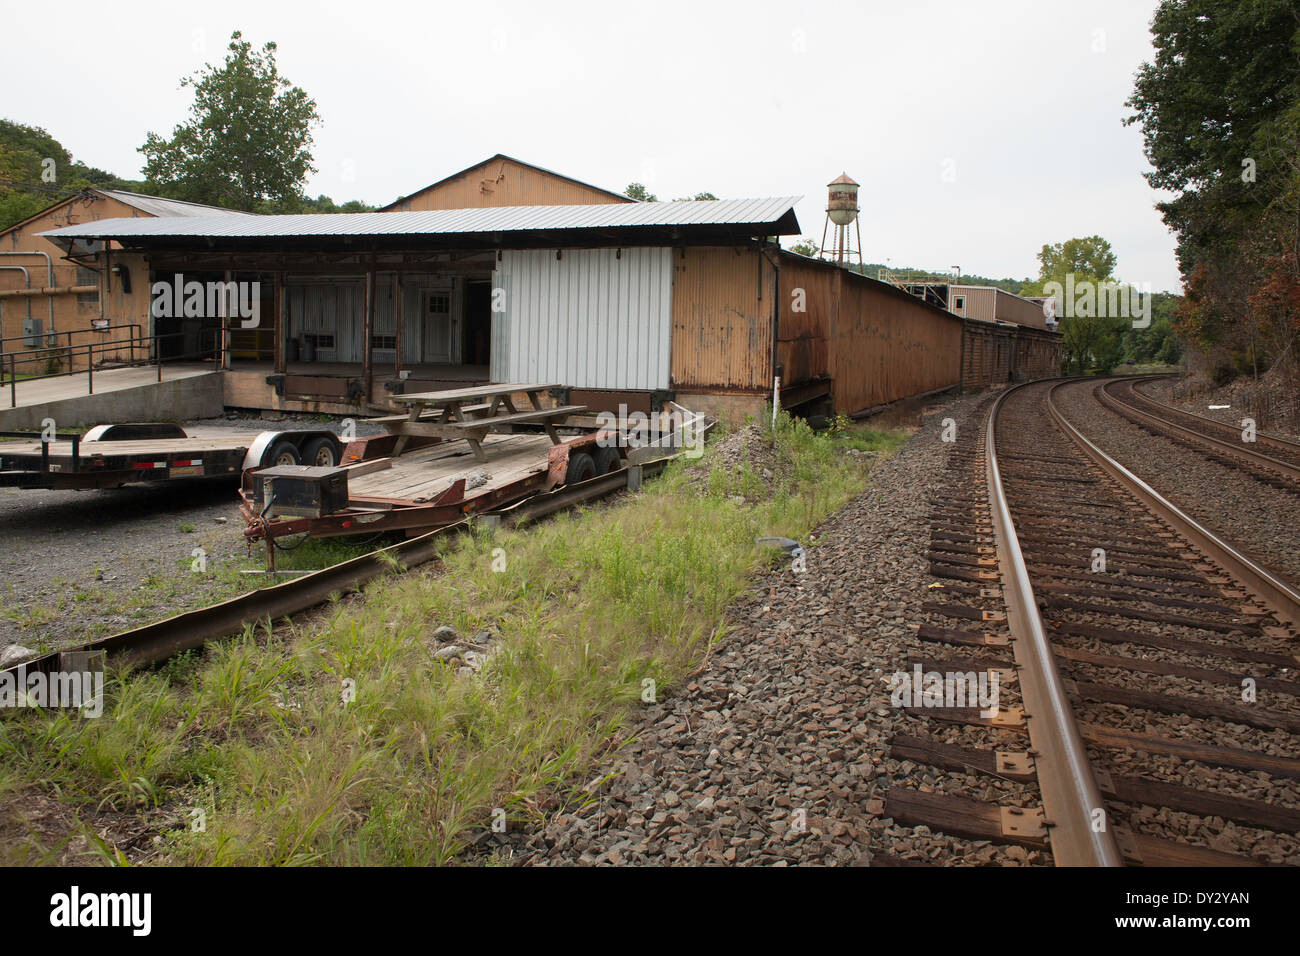 Railroad tracks swing past an aging manufacturing building in Chatham in upstate New York. - Stock Image